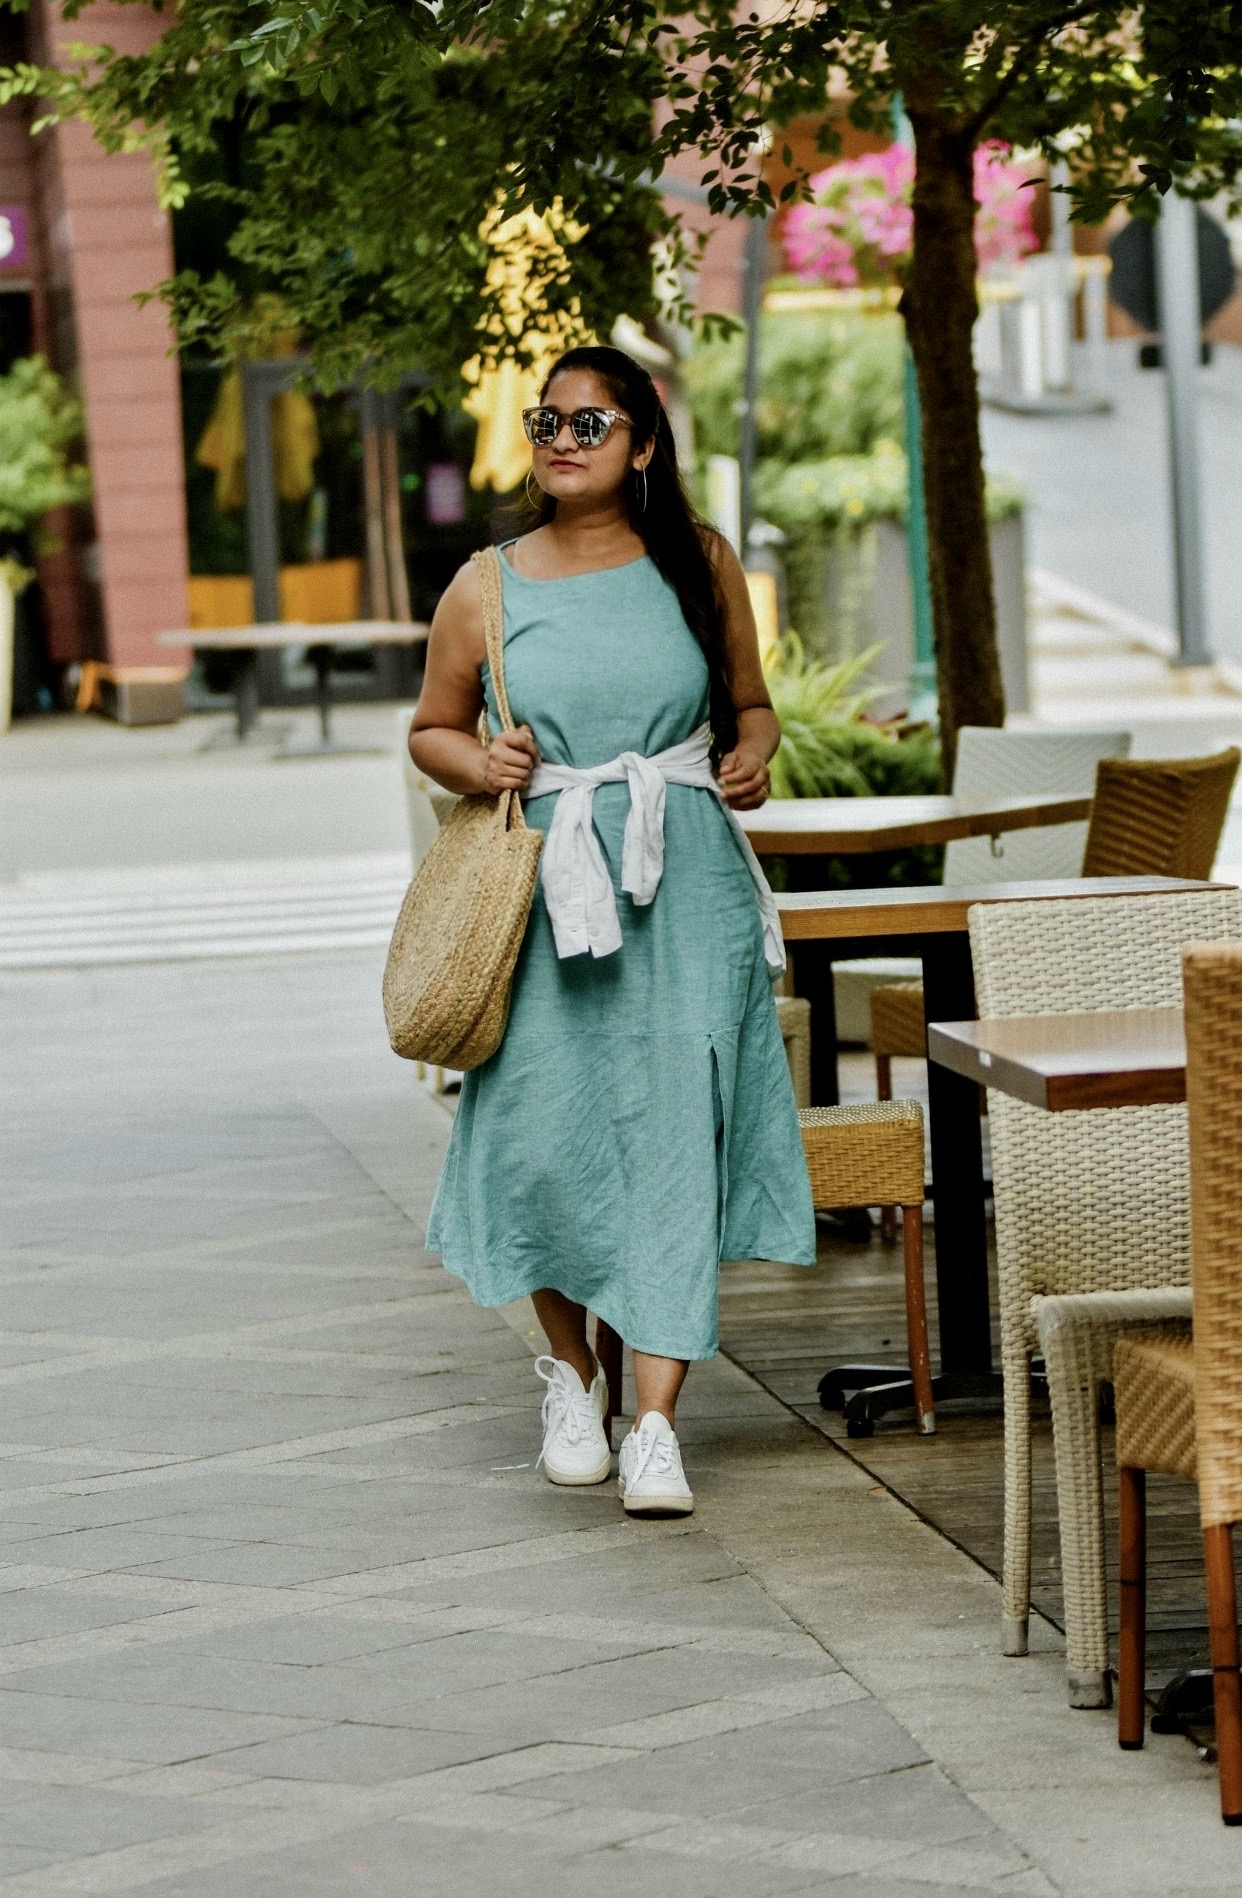 wearing JJill Linen & Rayon Asymmetric Dress, Veja white sneakers, linen white shirt | Labor Day Sales by popular Maryland life and style blog, Dreaming Loud: image of a woman walking outside and wearing a JJill Linen & Rayon Asymmetric Dress, Veja white sneakers, and linen white shirt.